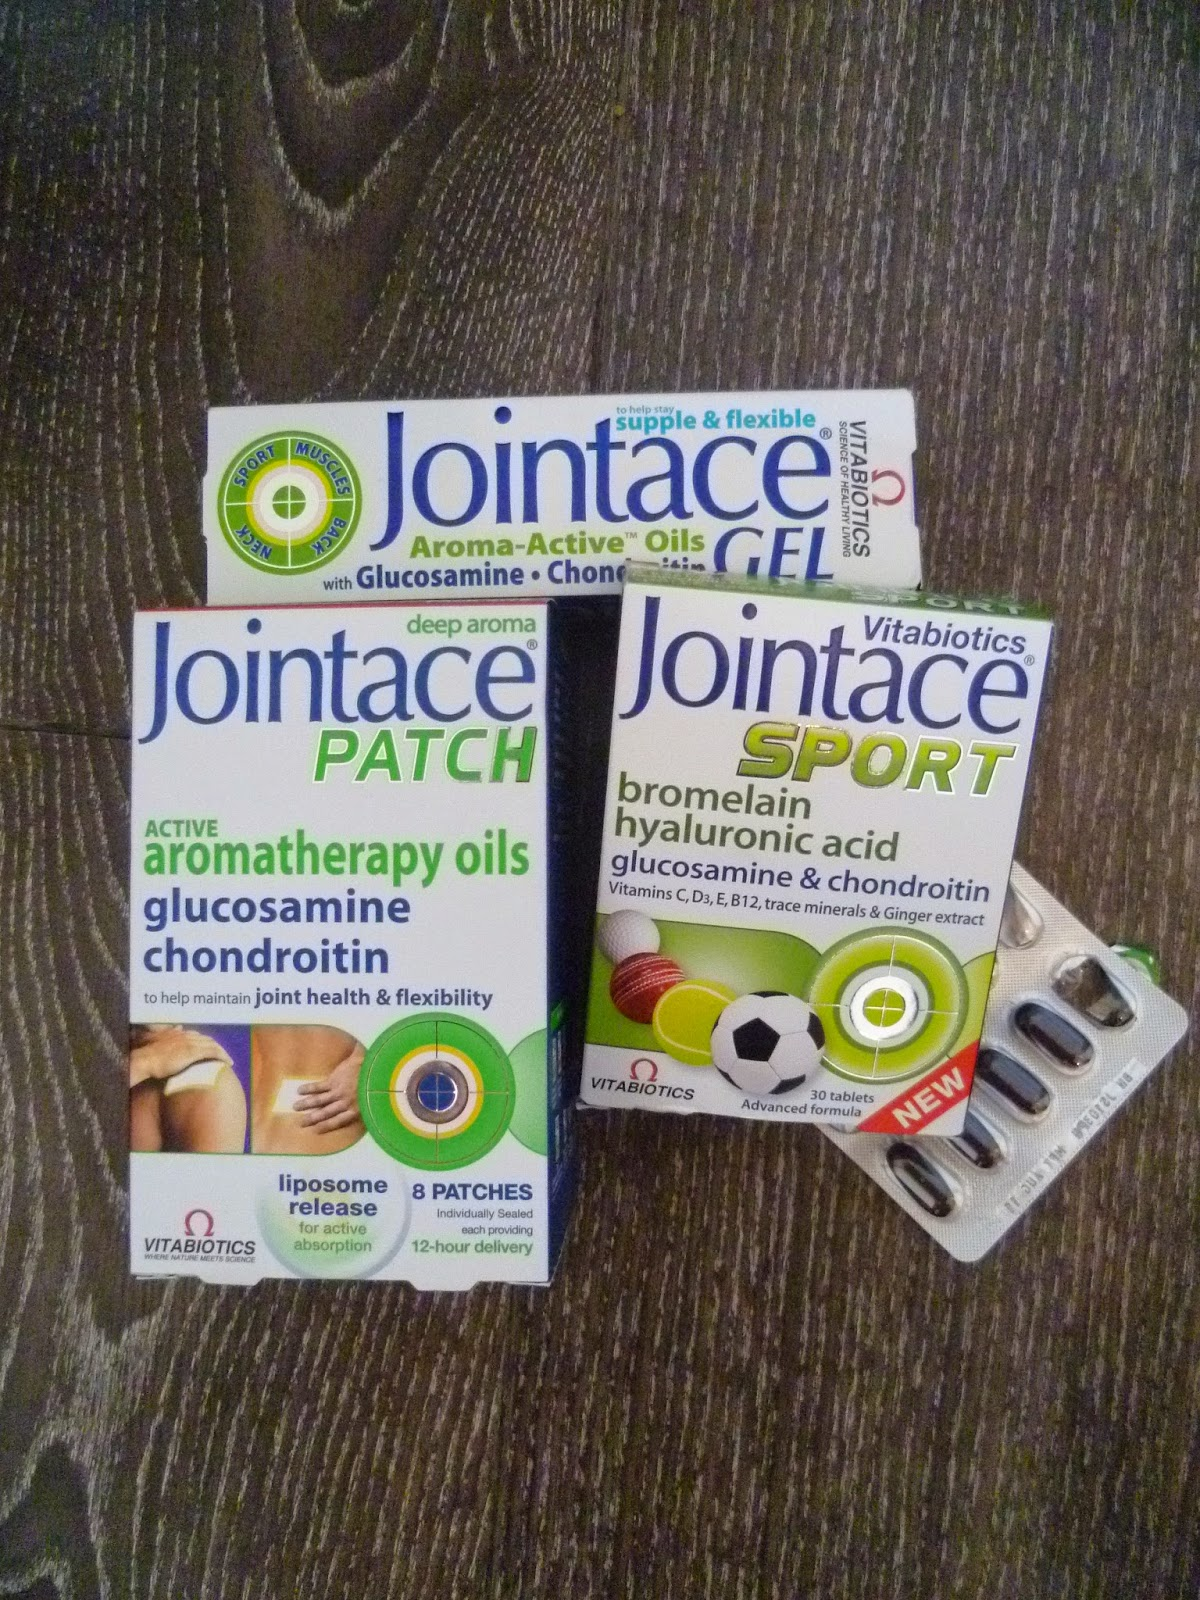 Jointace products